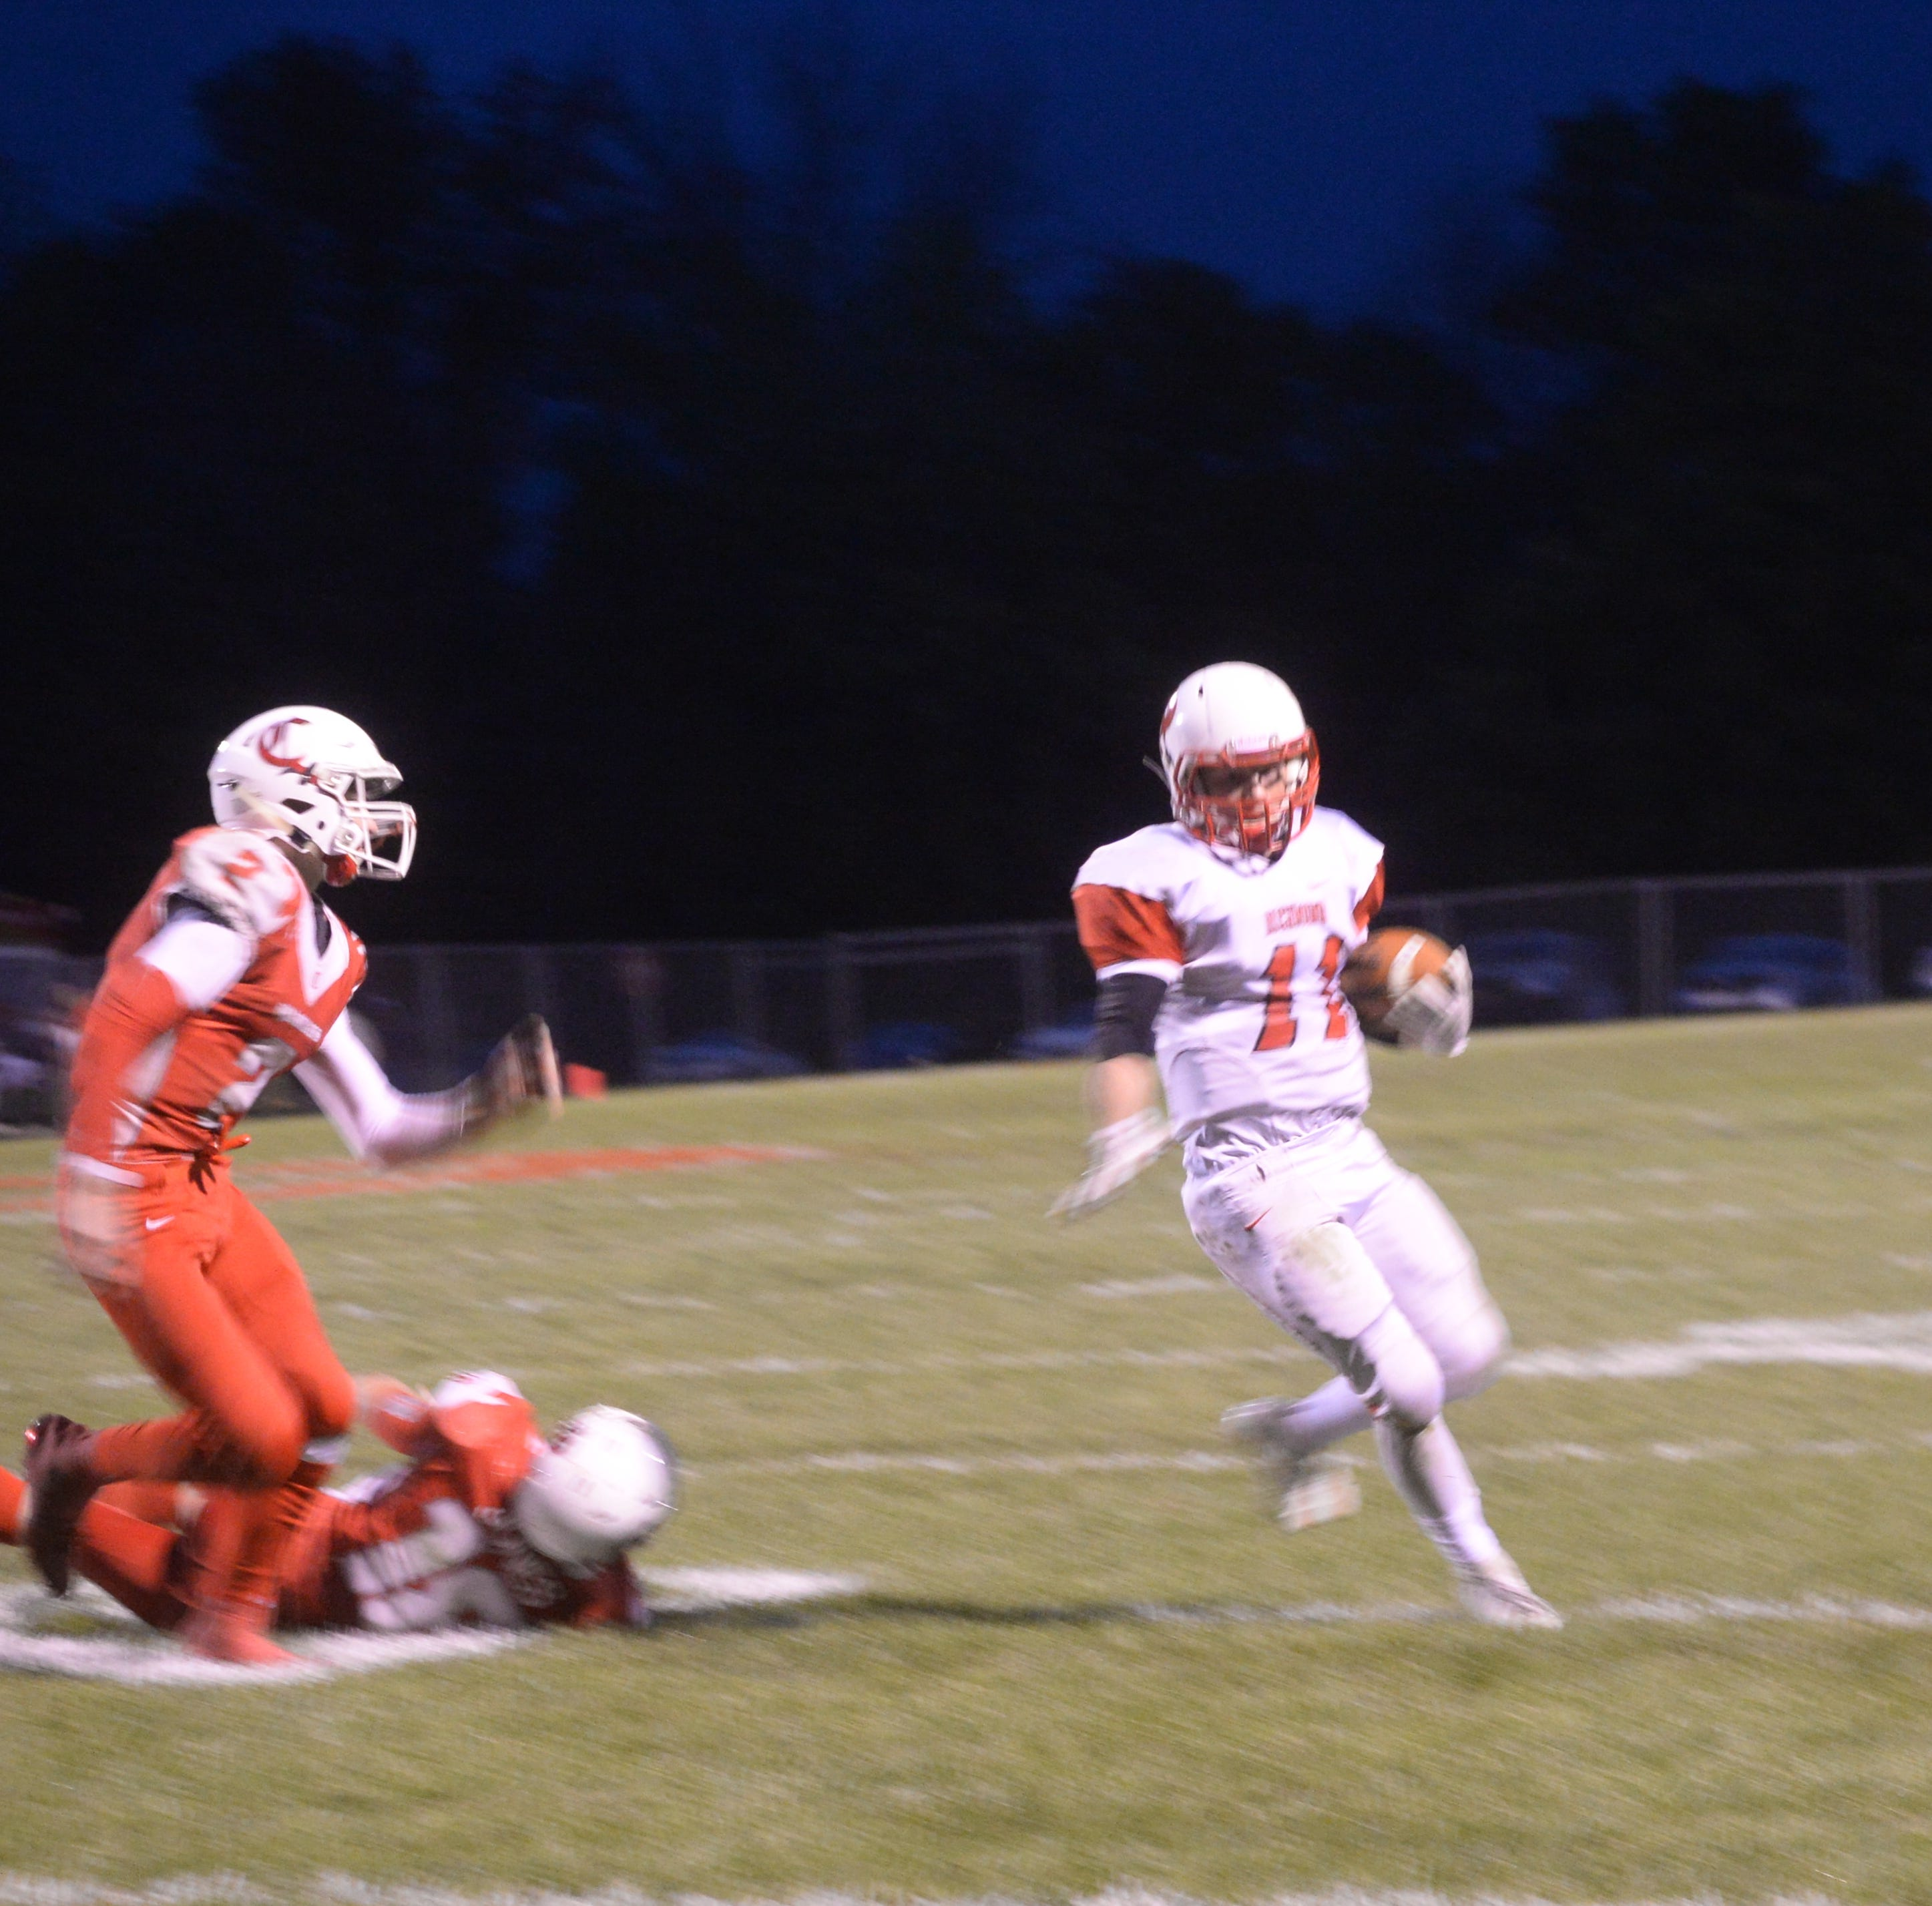 Red Devil's return from injury keys Richmond's sectional football win over Connersville